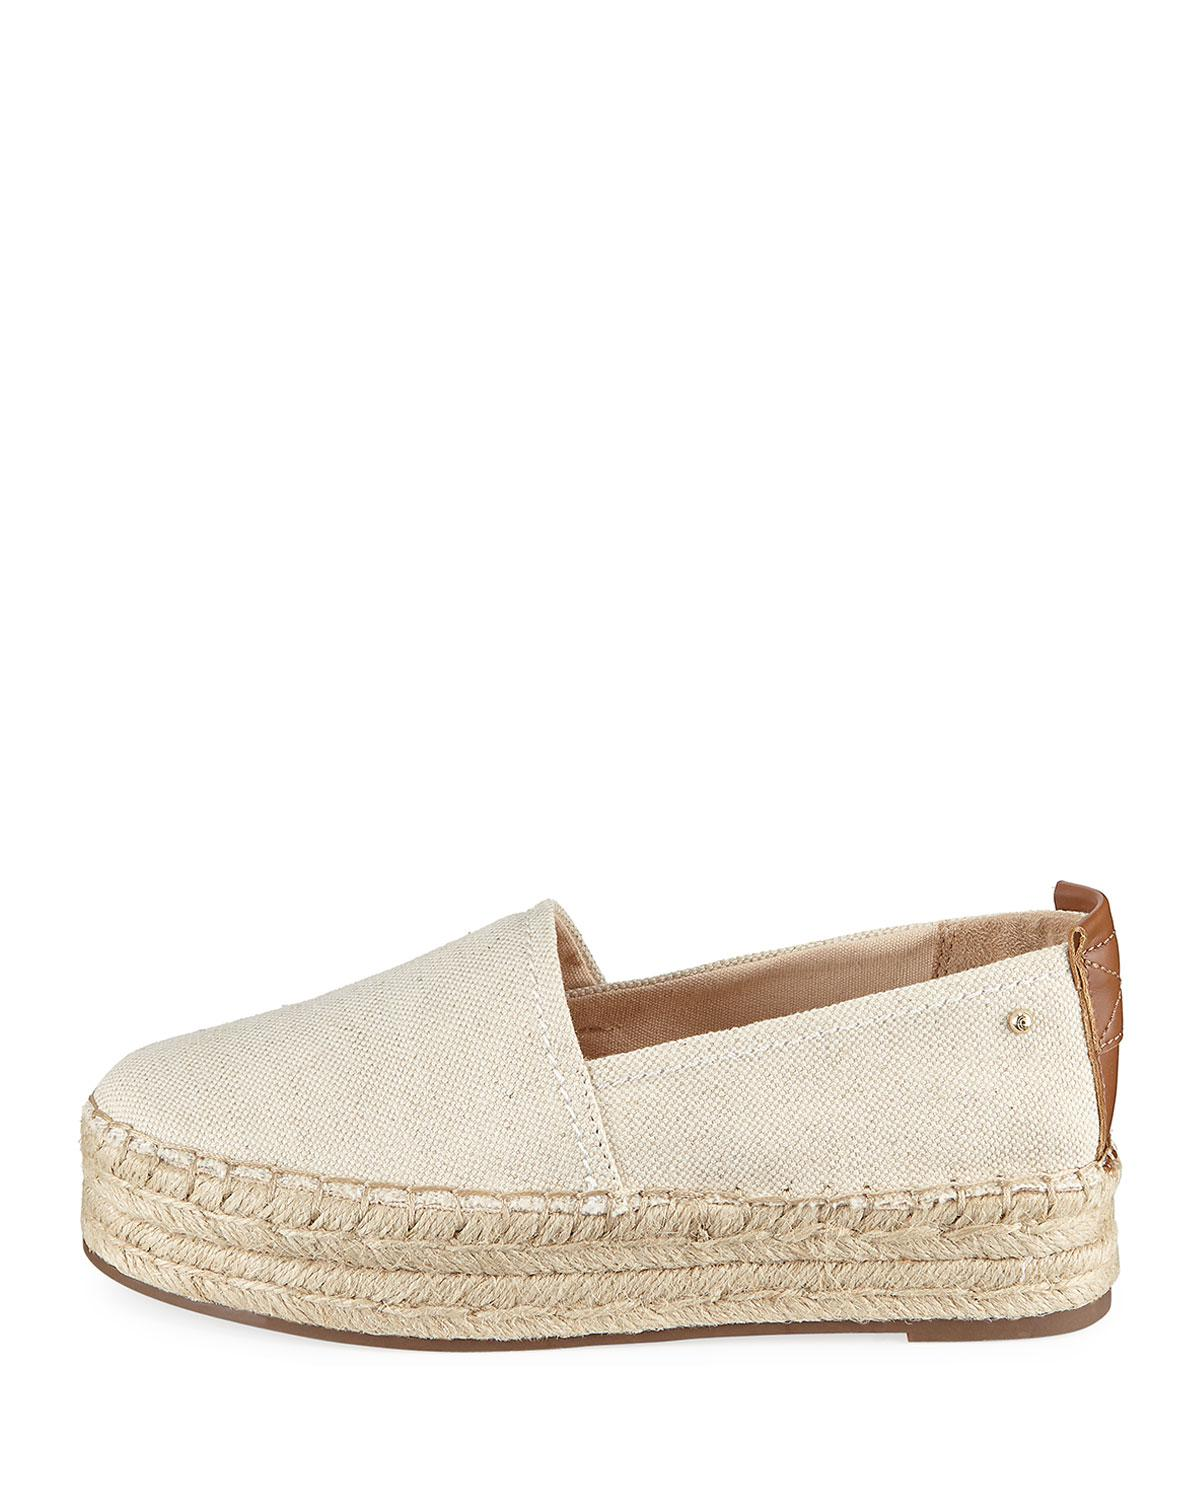 73b3bb4d9 Circus by Sam Edelman Camdyn Double Canvas Espadrille in White - Lyst